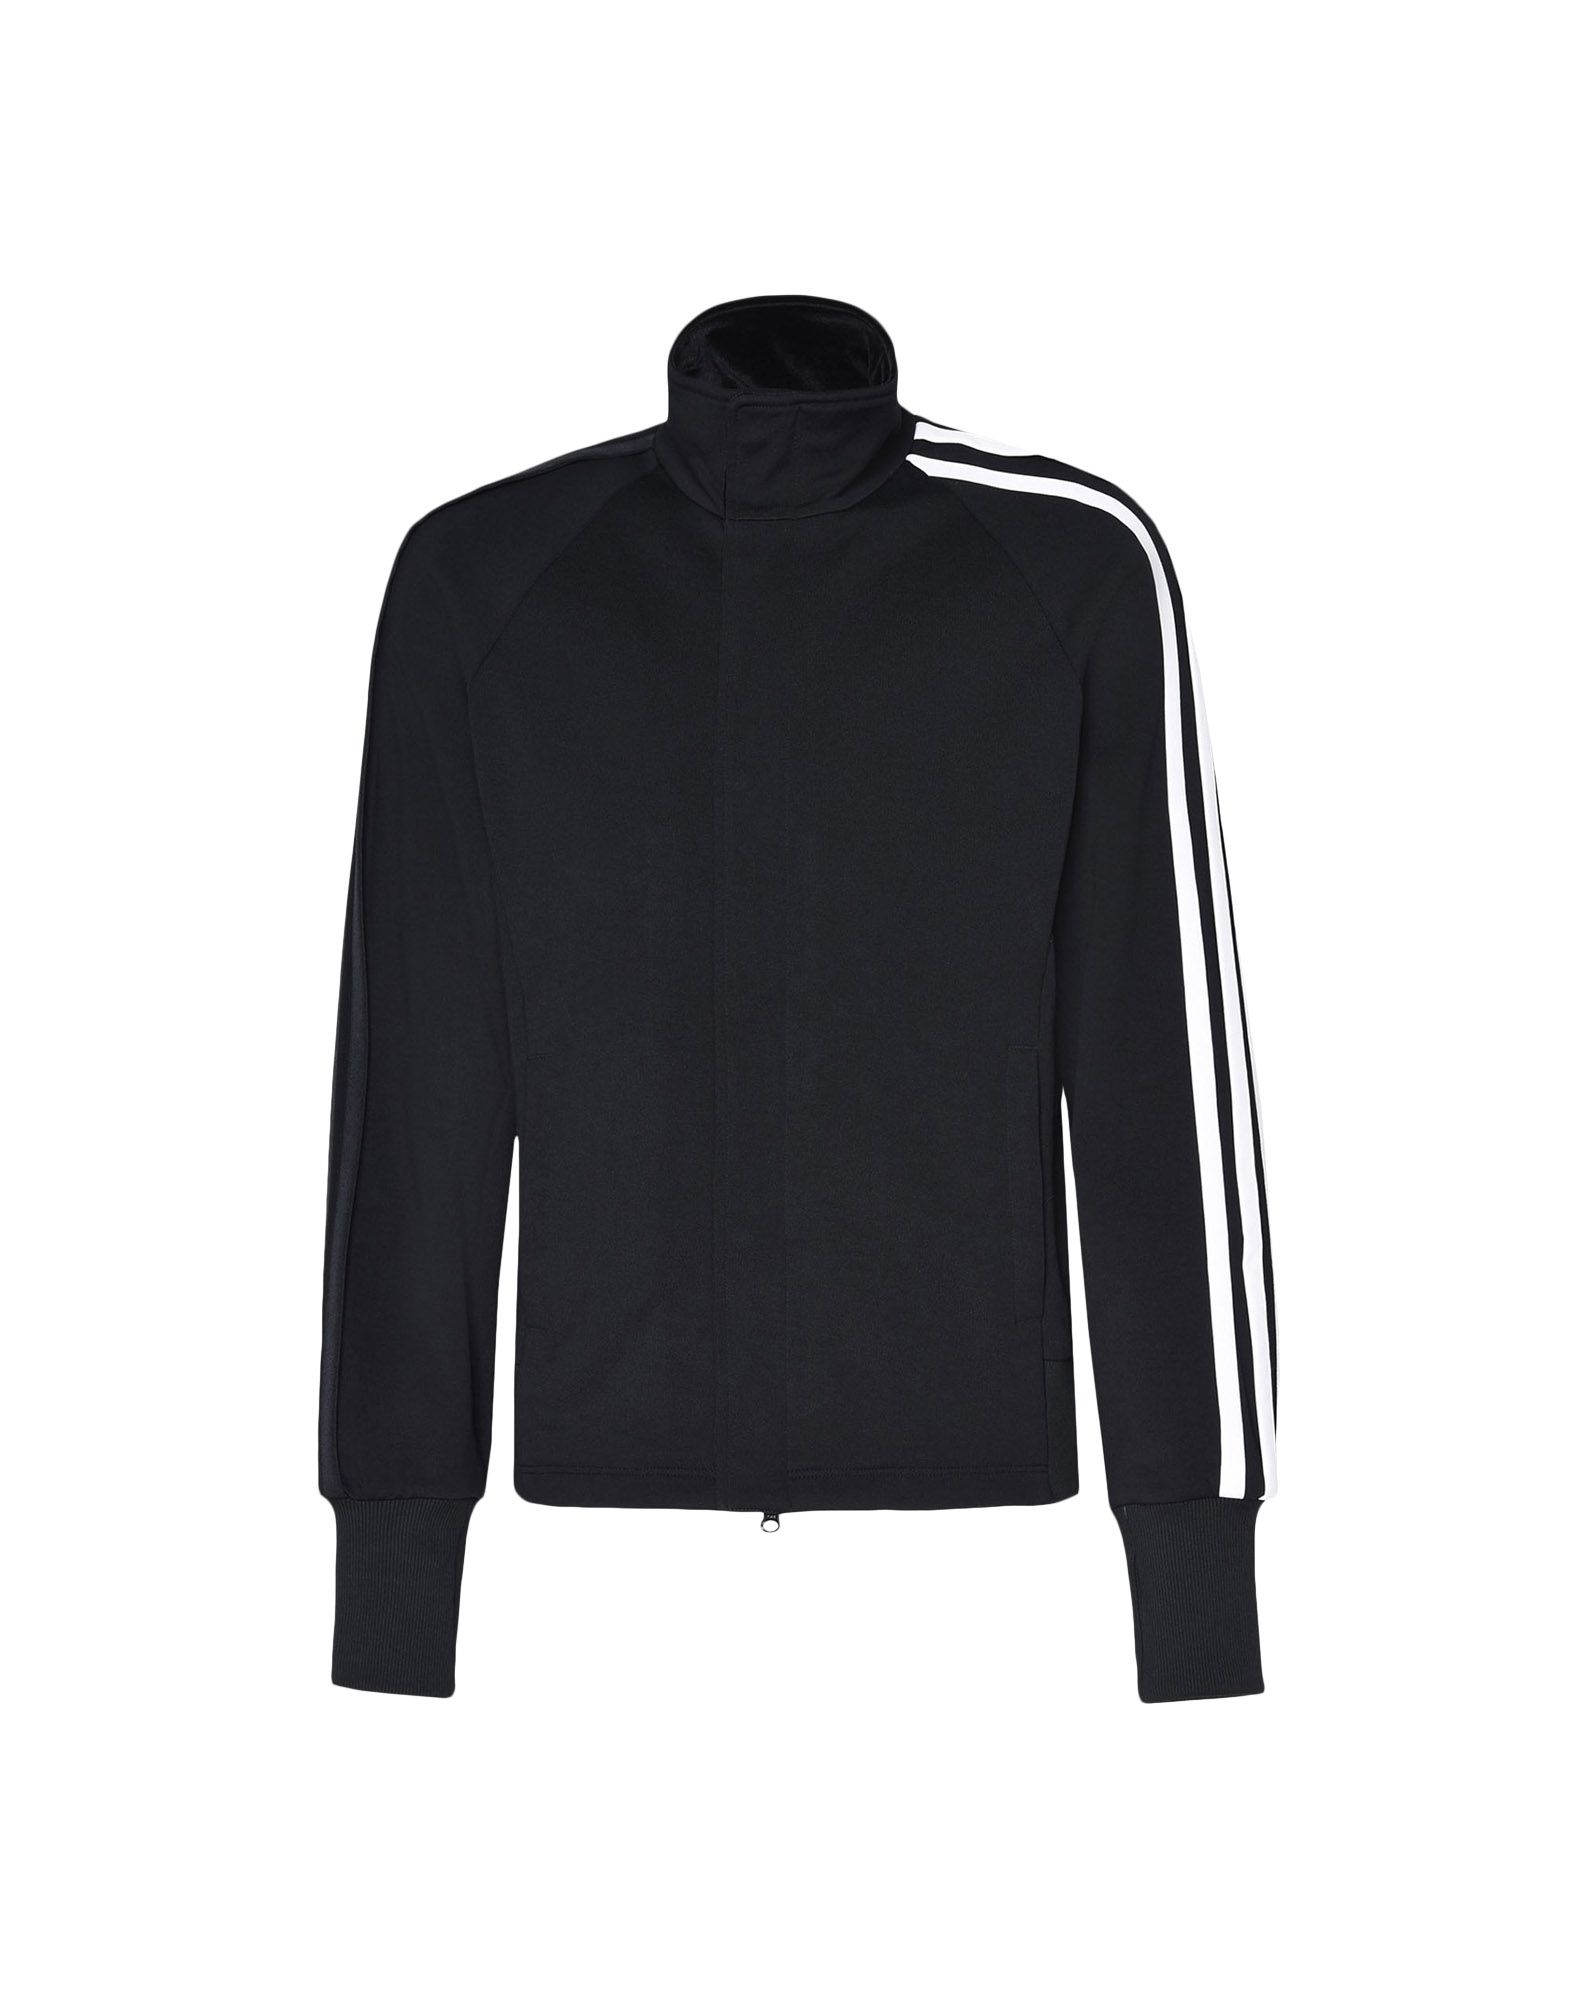 Y-3 Y-3 3-Stripes Selvedge Matte Track Jacket Track top Man f